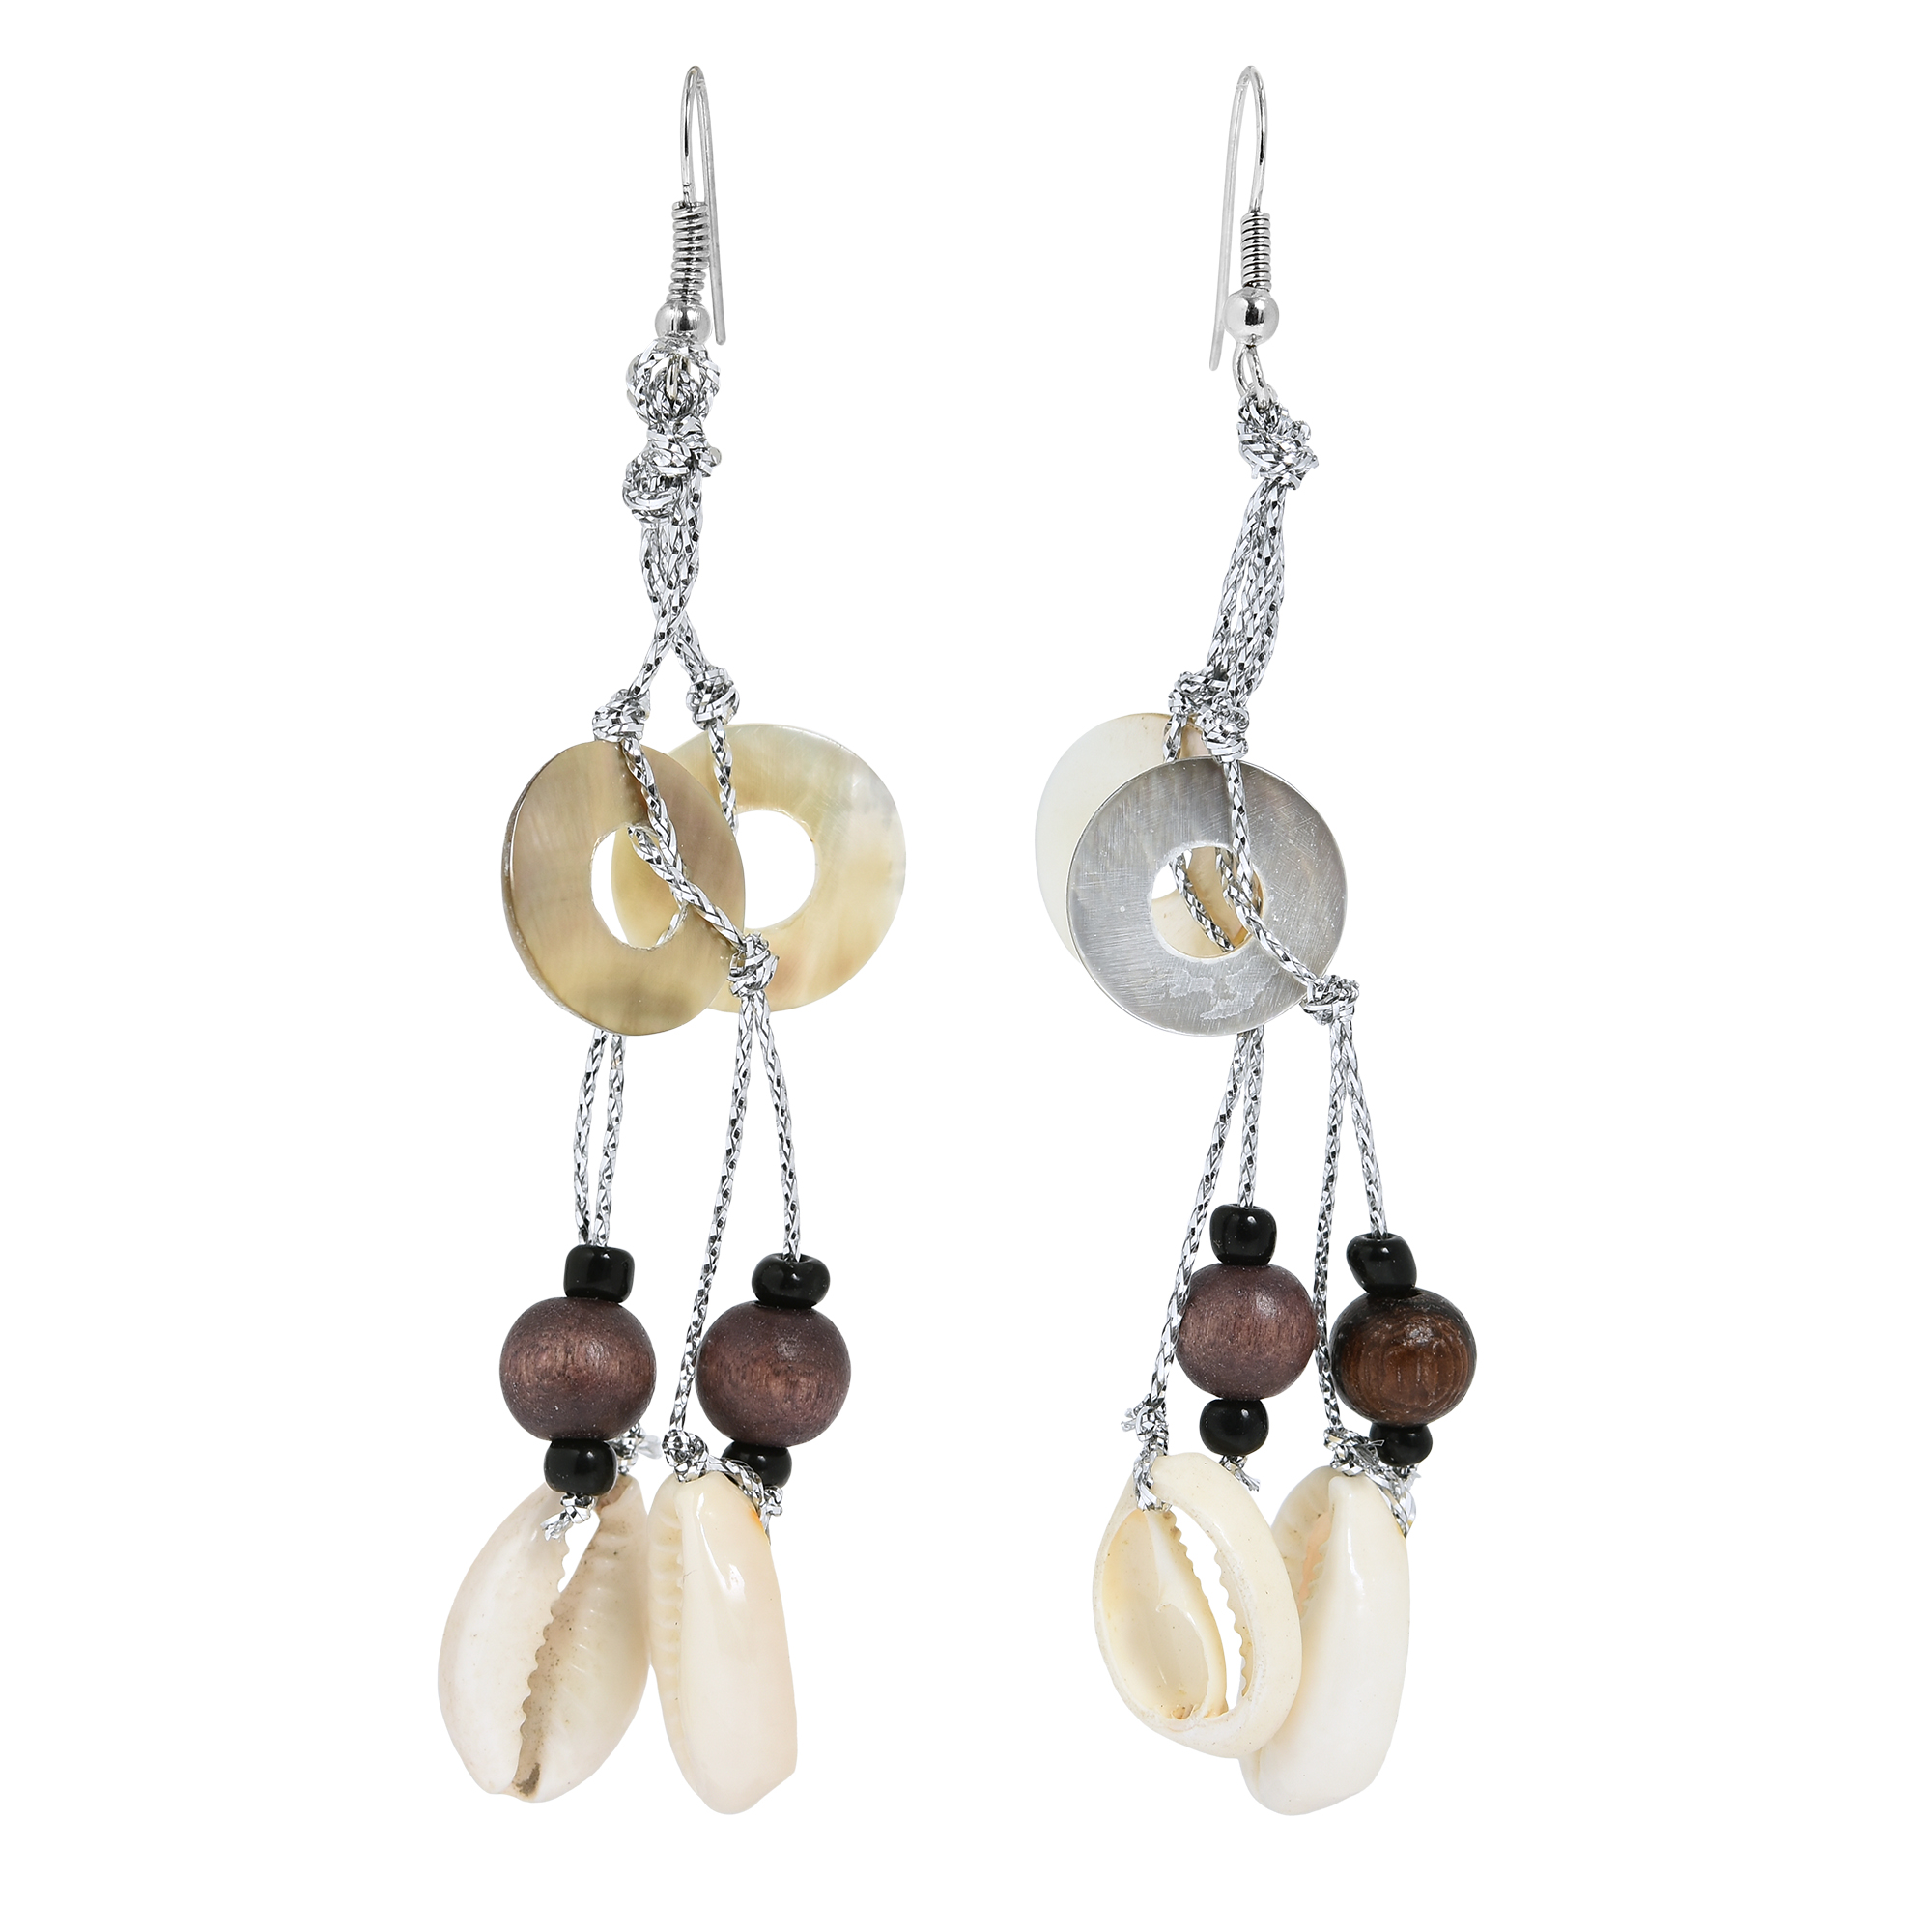 Handcrafted By Aeravida Artisans From The Philippine Archipelago, These  Beachythemed Earrings Are Made With Brownlip And Cowrie Shells